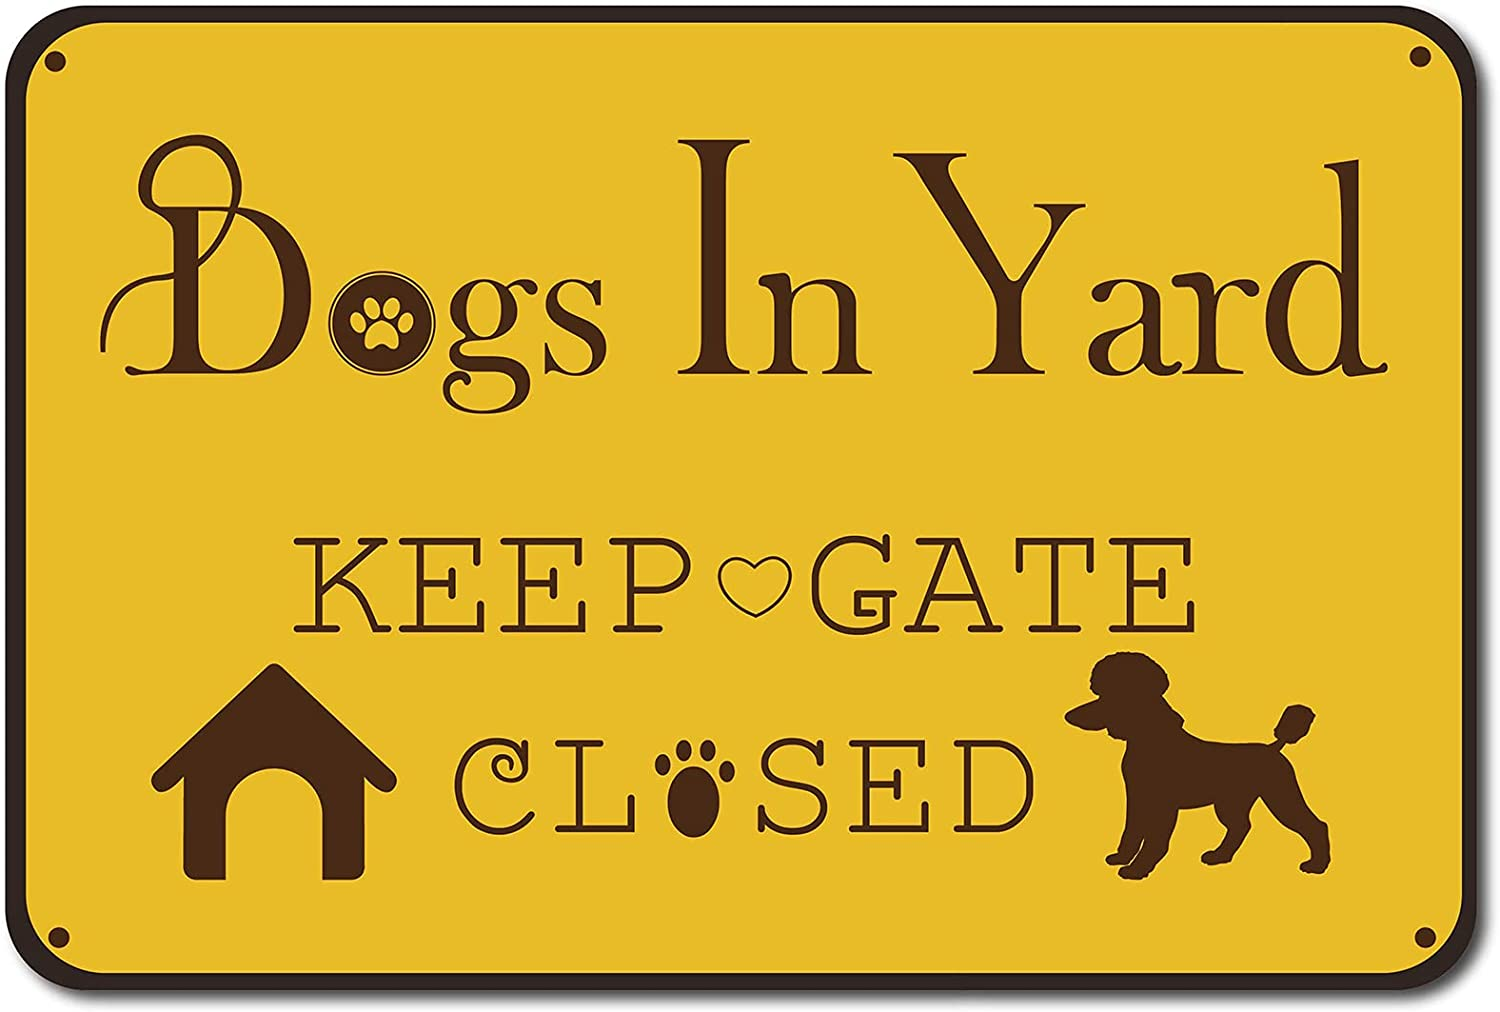 CREATCABIN Please Keep Gate Closed Dogs in Yard Reto Vintage Metal Tin Signs for Lawn Garden Wall Art Decor